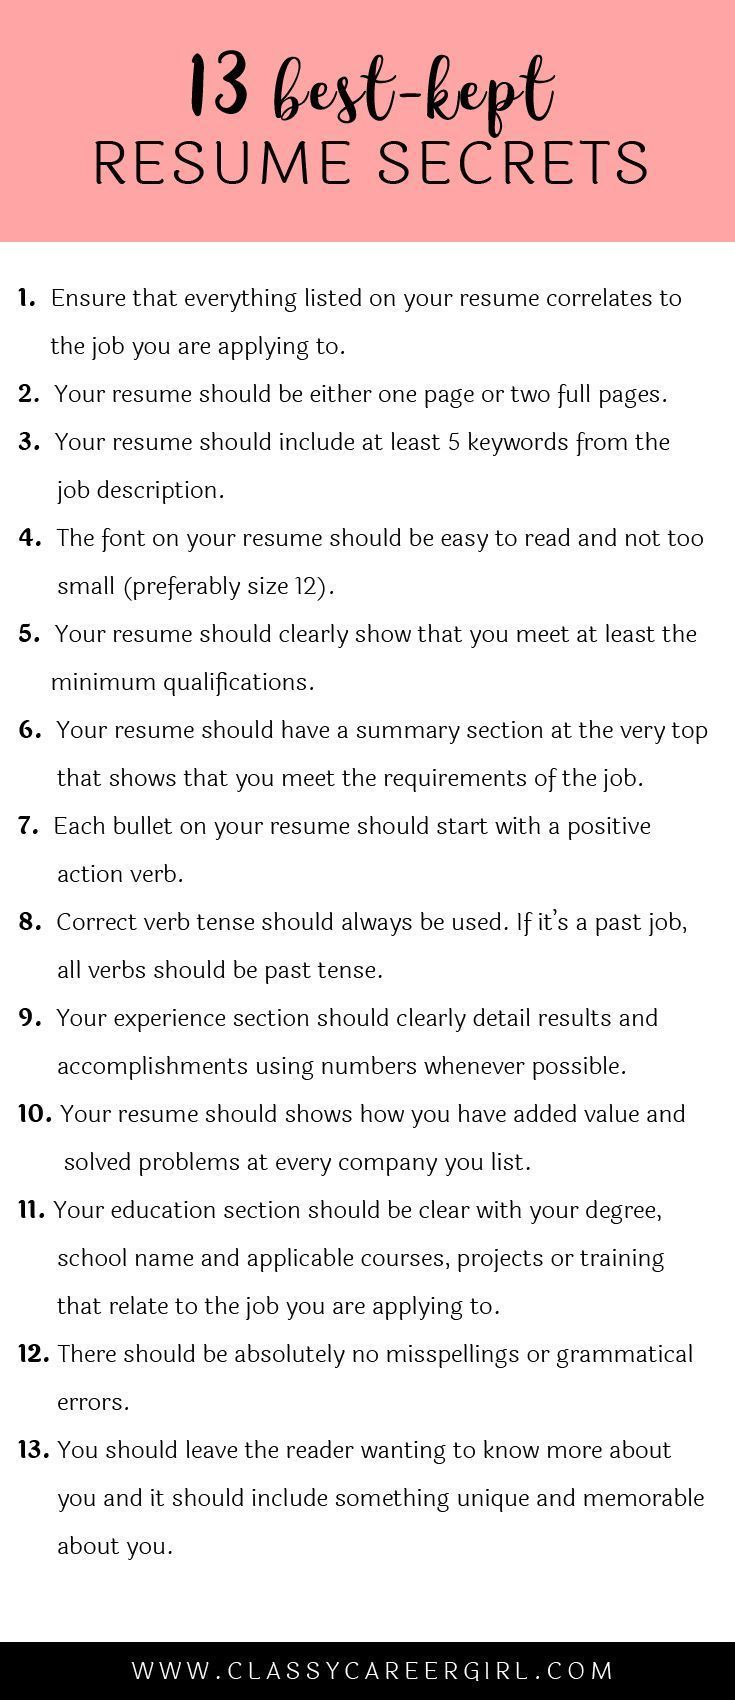 Some Hiring Managers Will Toss Your Resume Out If You Donu0027t Know These 13